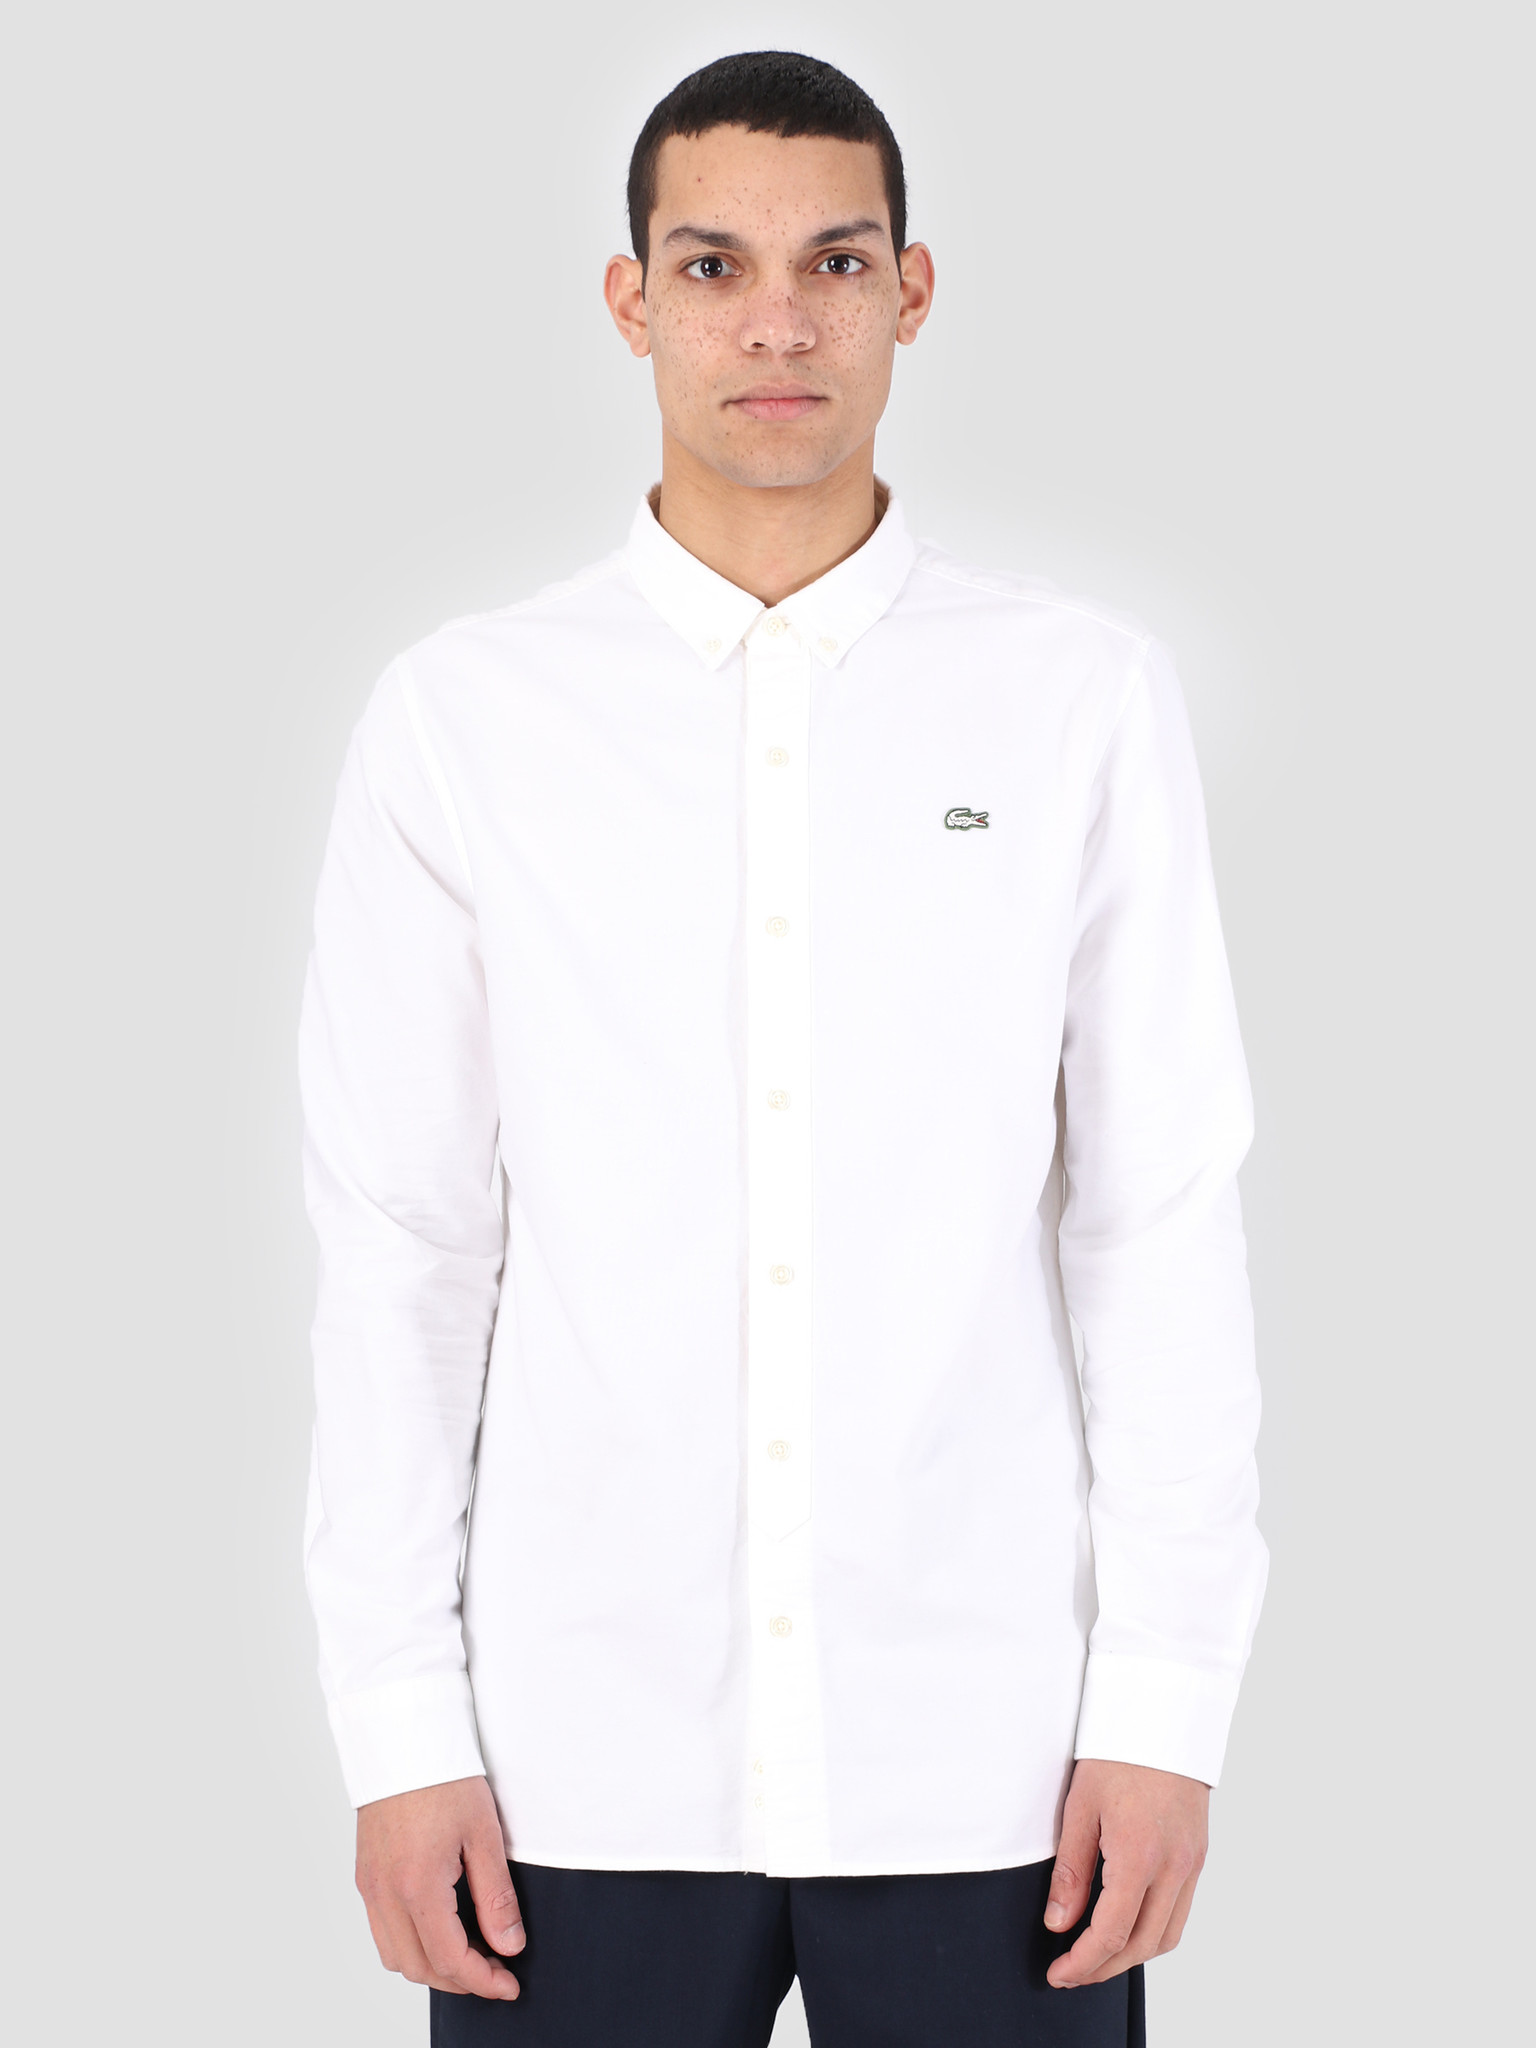 17ac7fcdca4a Lacoste Lacoste LIVE 1Hc2 Men S Longsleeve Woven Shirt 01 Mascarpone White  Ch3766-91